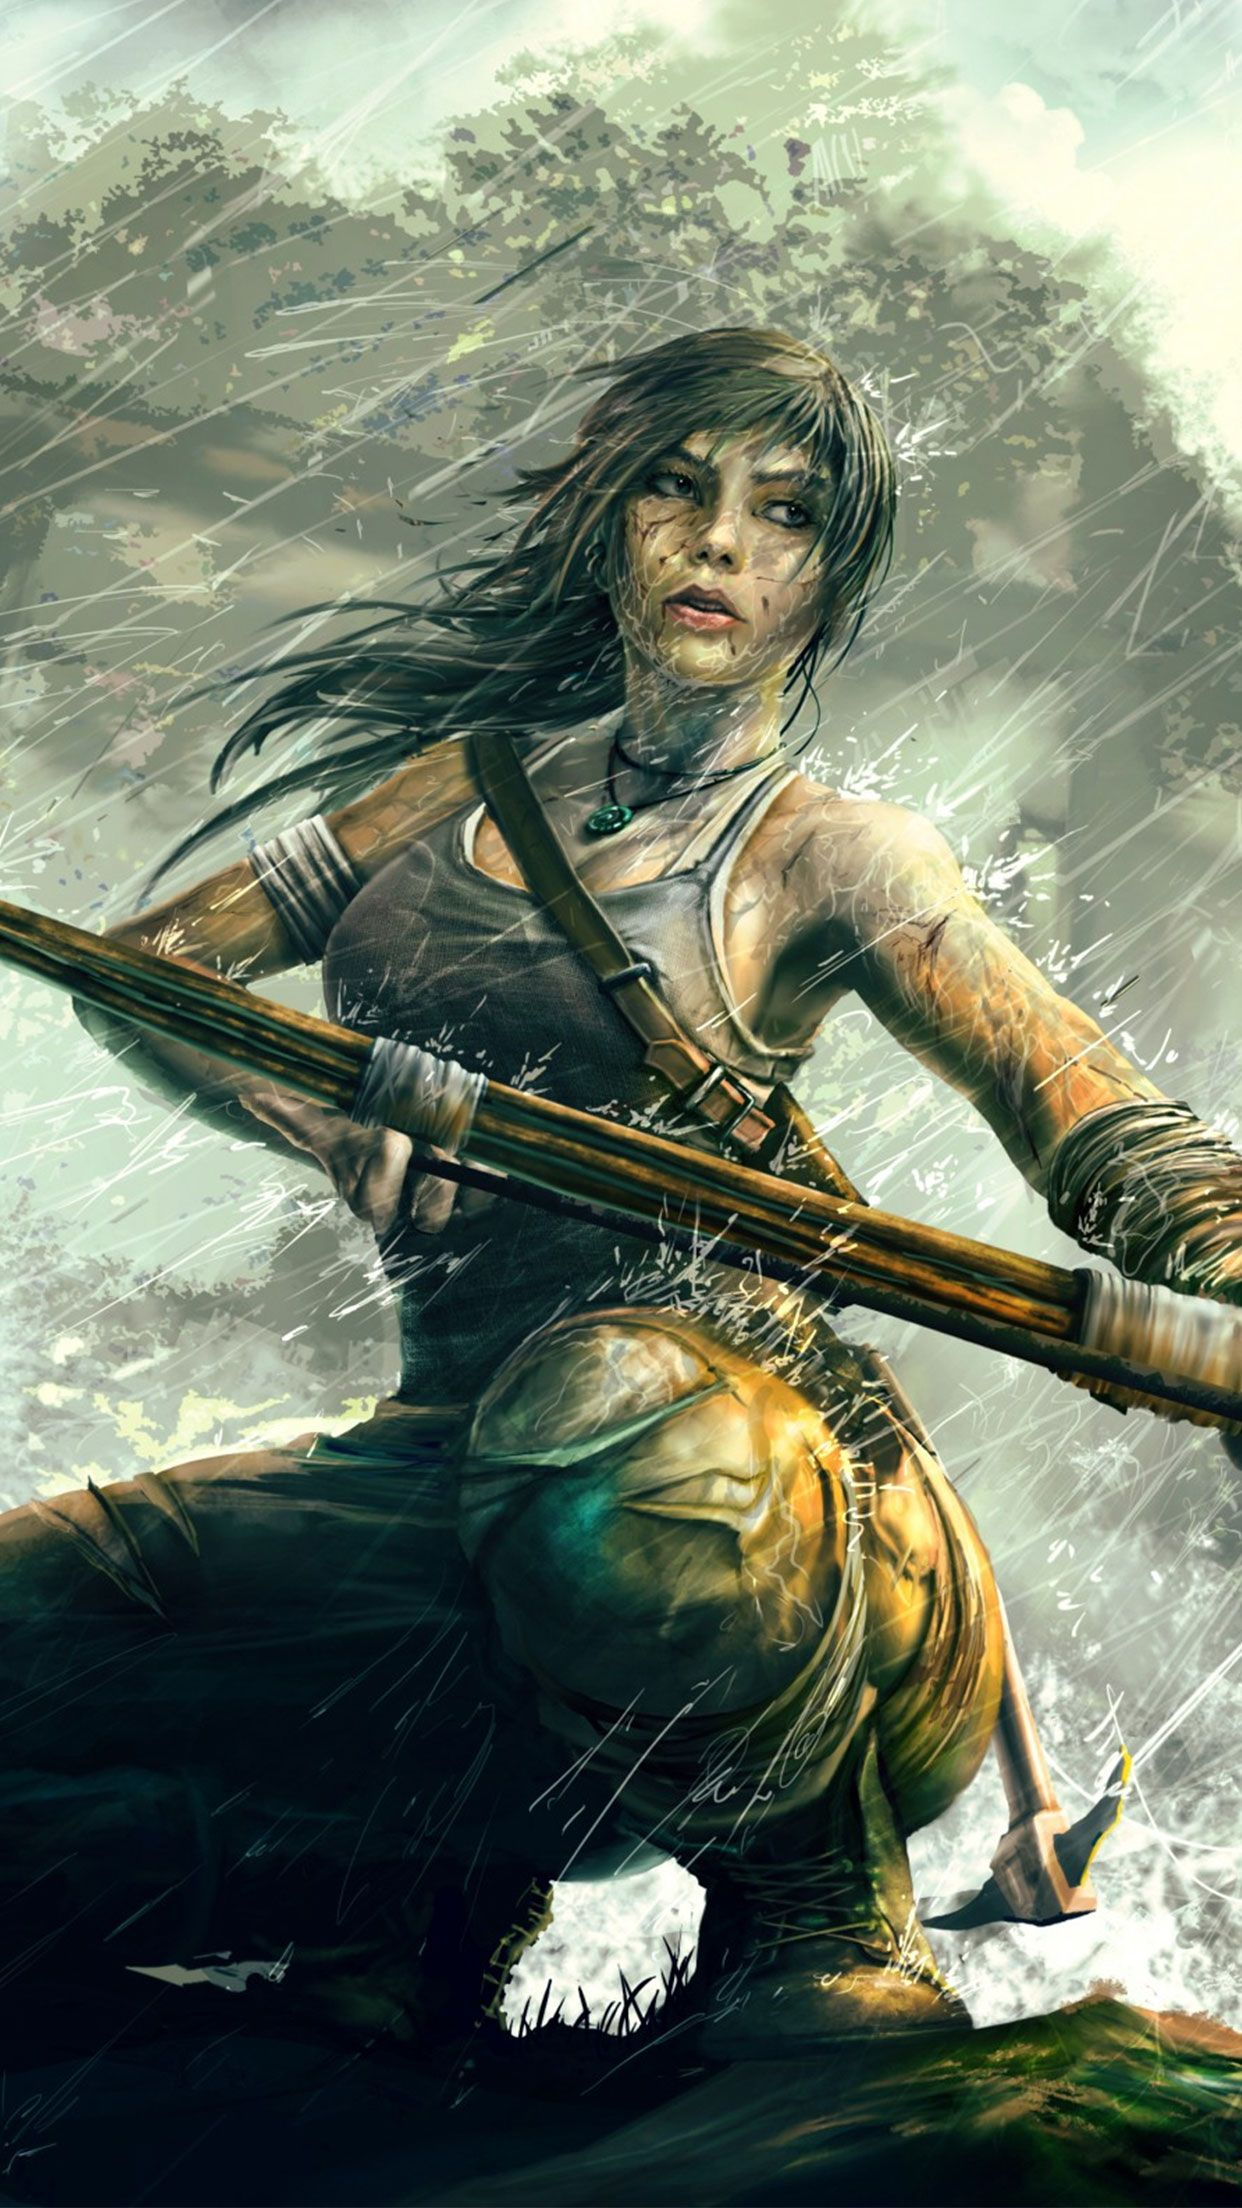 Tomb Raider Lara Croft Game Wallpaper For Iphone Android